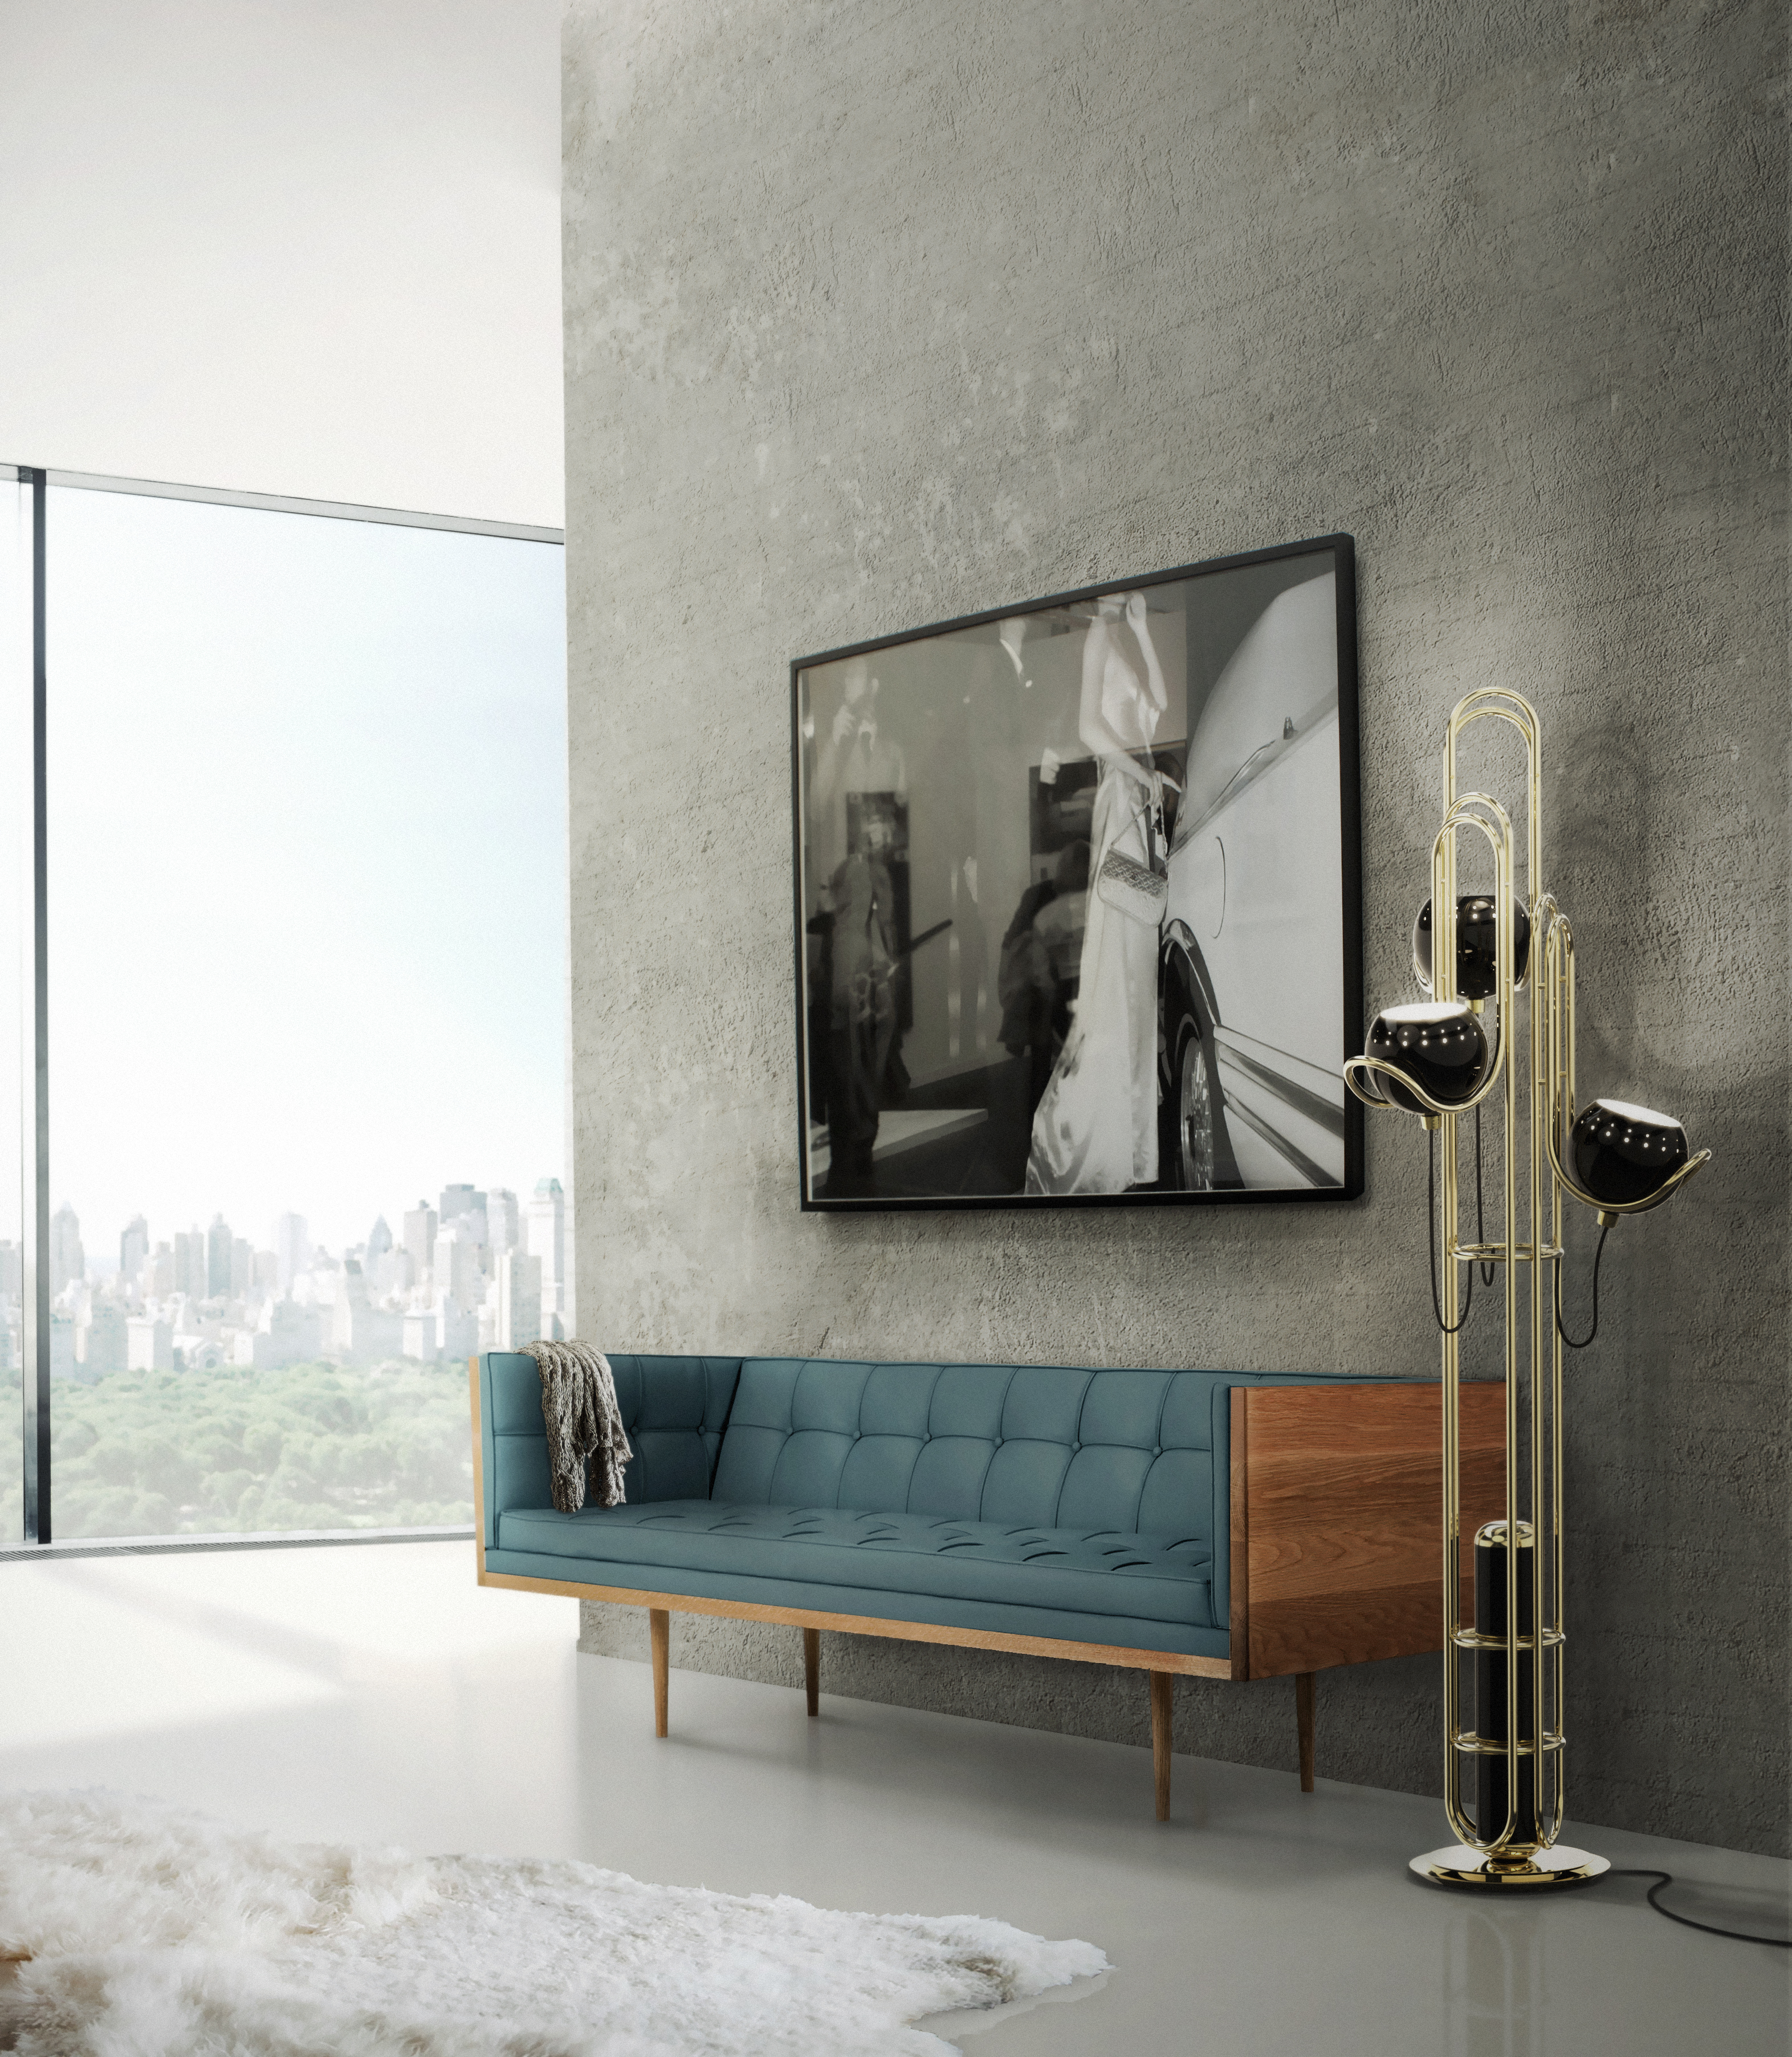 Bright Ideas Modern Floor Lamp Inspired in The Golden Years of Space 2 modern floor lamp Bright Ideas: Modern Floor Lamp Inspired in The Golden Years of Space Bright Ideas Modern Floor Lamp Inspired in The Golden Years of Space